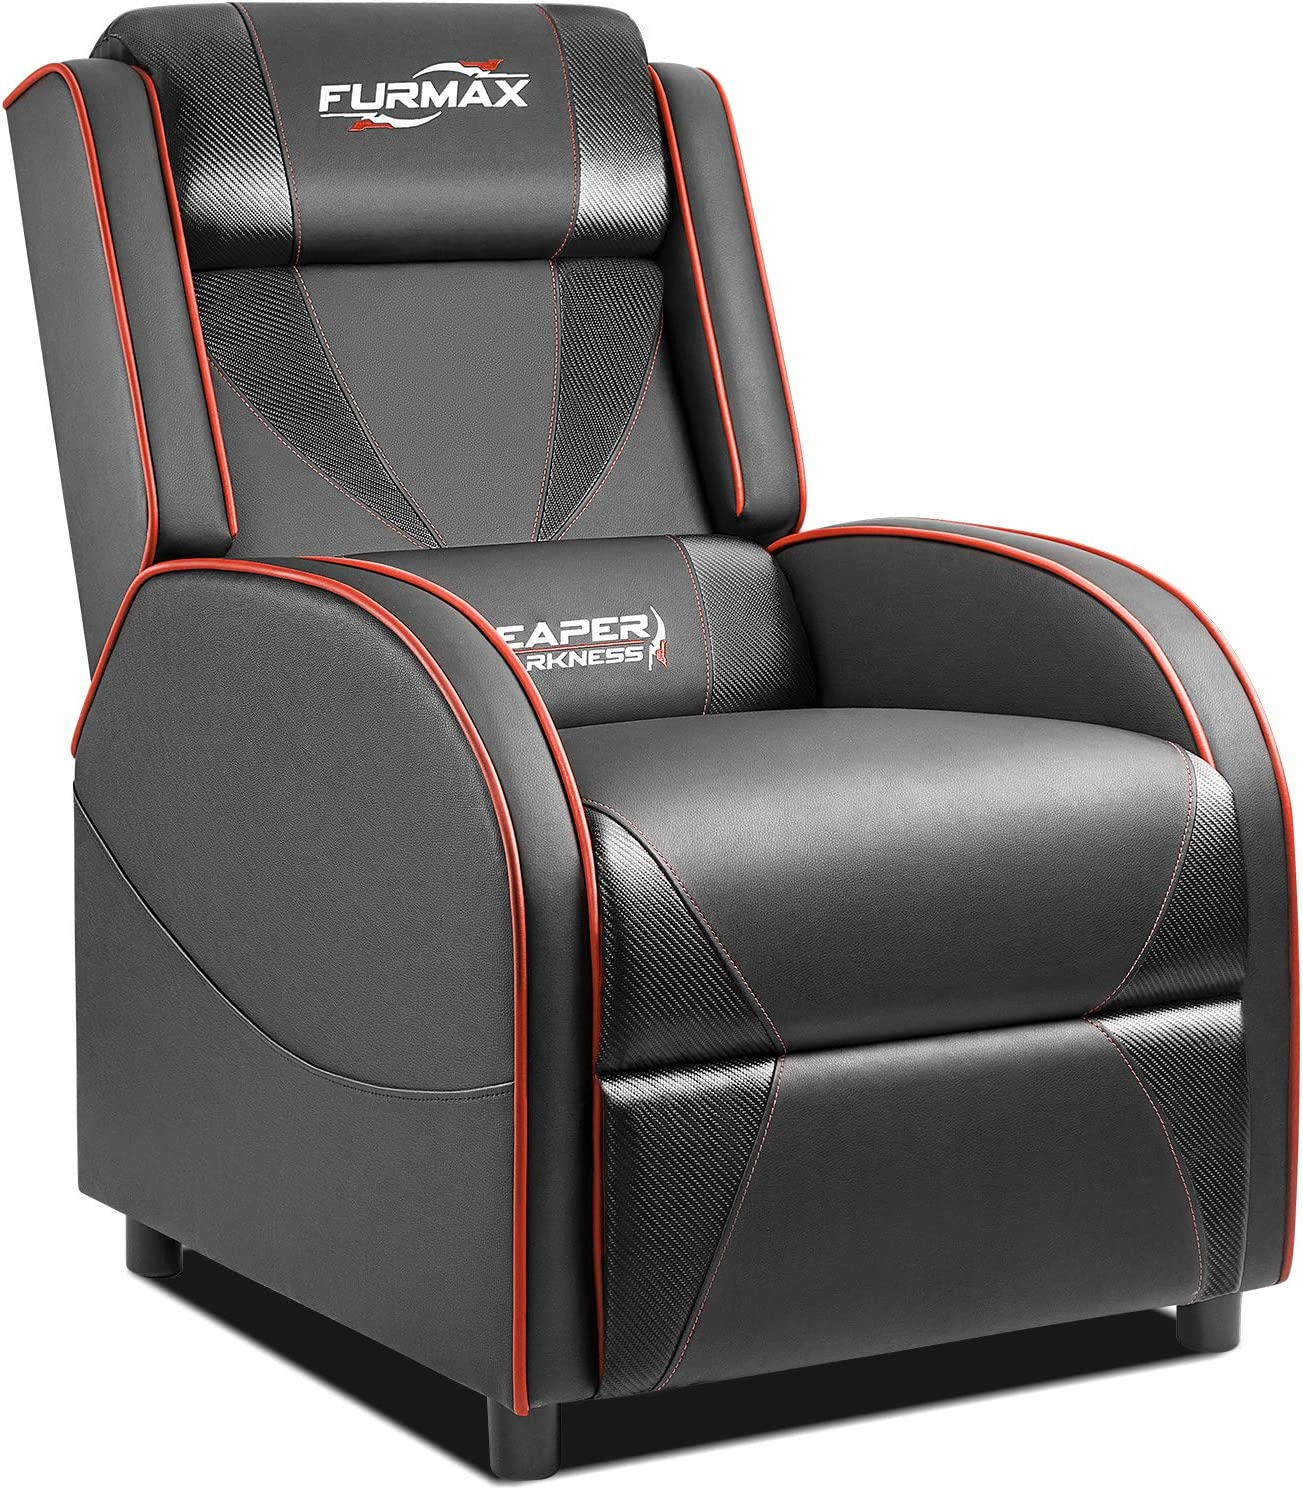 Furmax Gaming Recliner Chair Racing Style Single Ergonomic Lounge Sofa PU Leather Reclining Home Theater Seat for Living Room (Black)